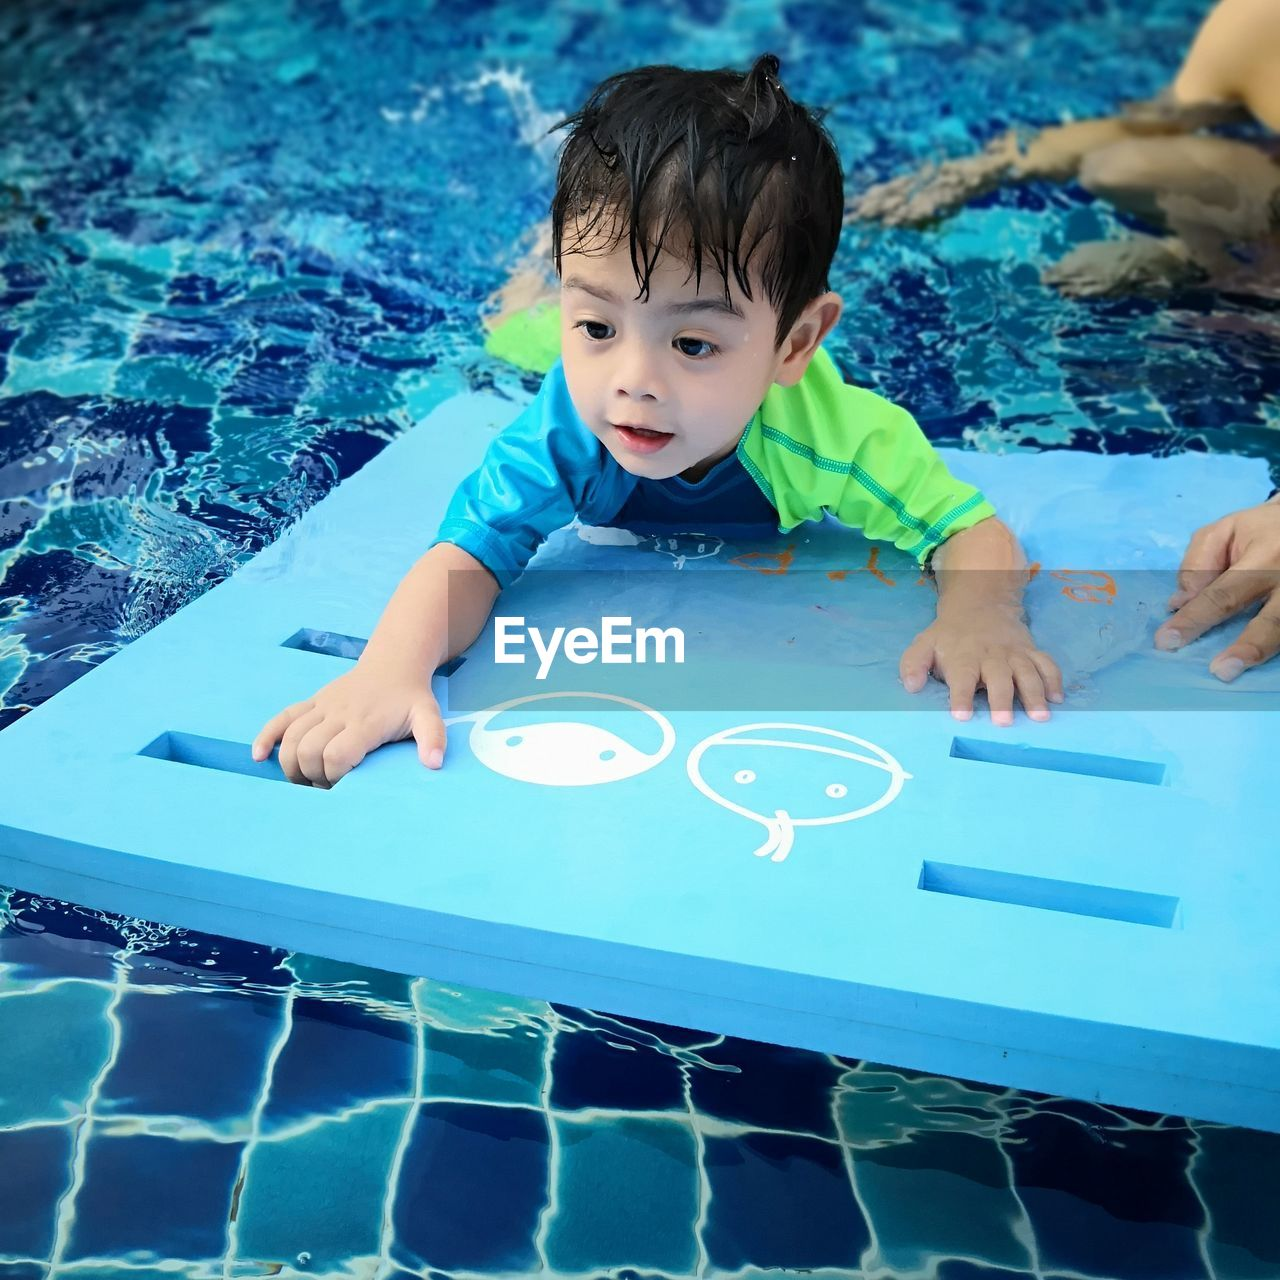 HIGH ANGLE PORTRAIT OF CUTE BOY FLOATING IN SWIMMING POOL